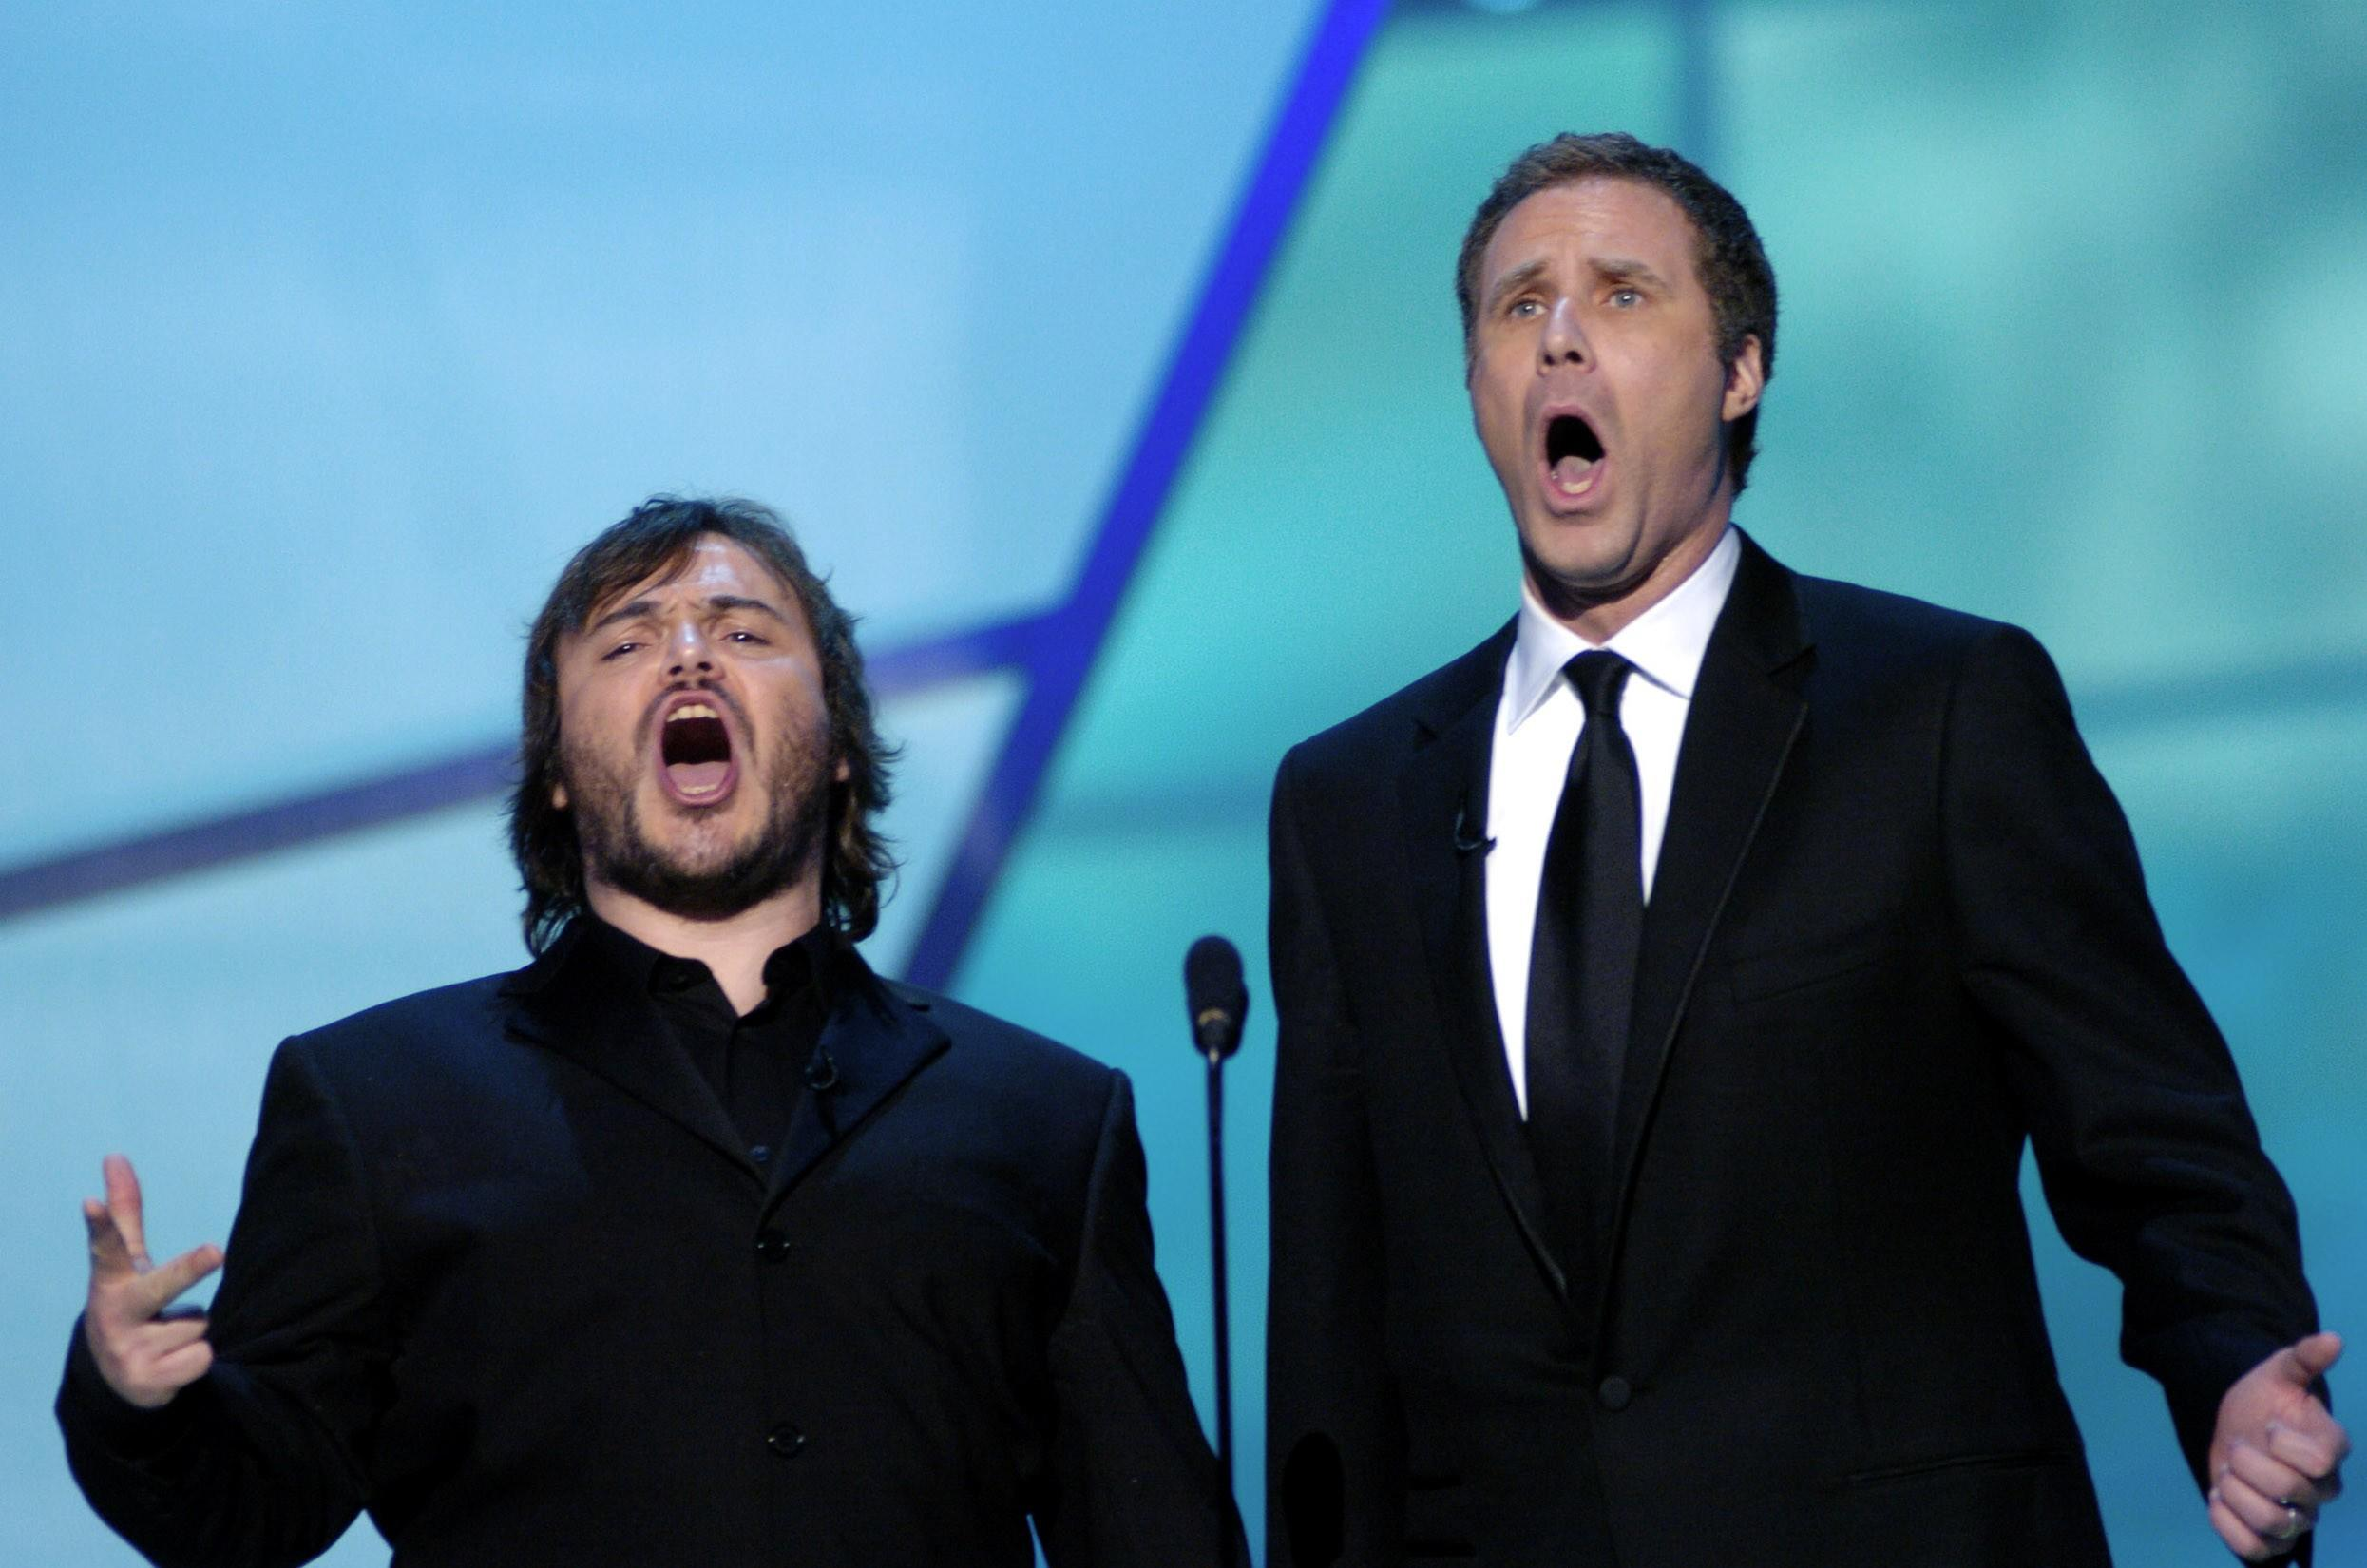 The Craziest Moments at the Oscars | Fandango